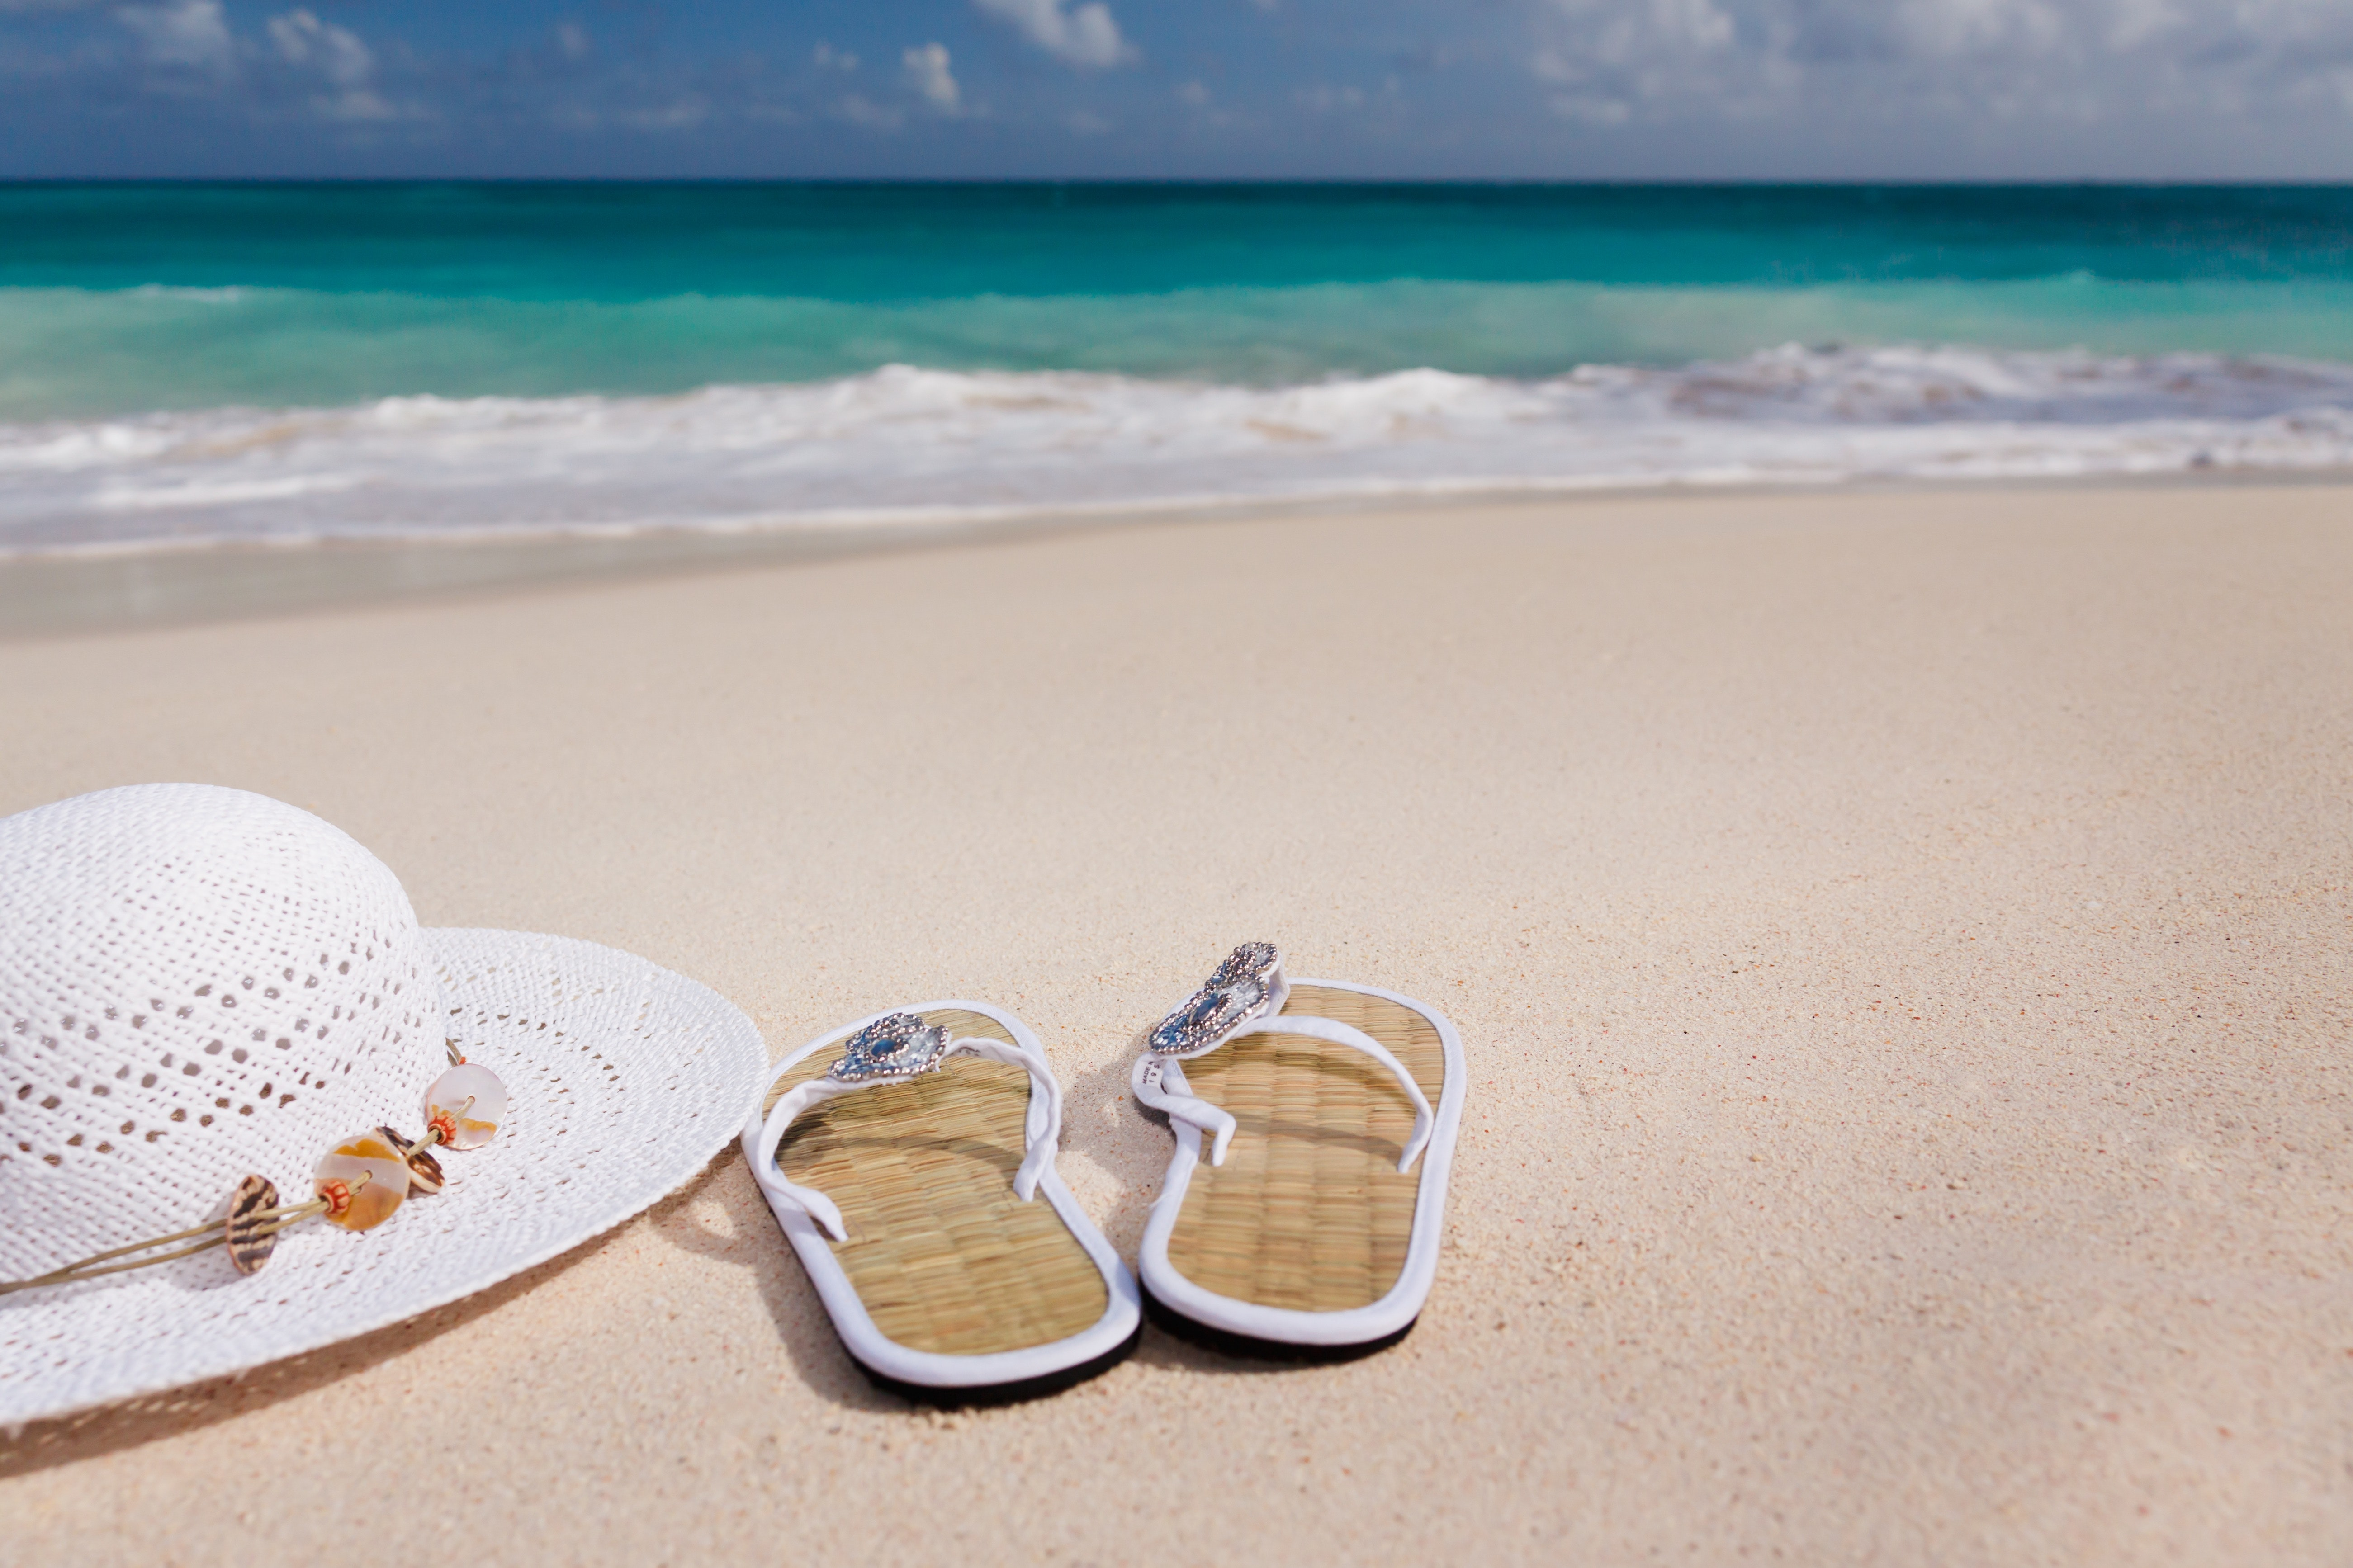 White Hat Beside White Flip Flops Near Short, Beach, Coast, Flip-flops, Hat, HQ Photo